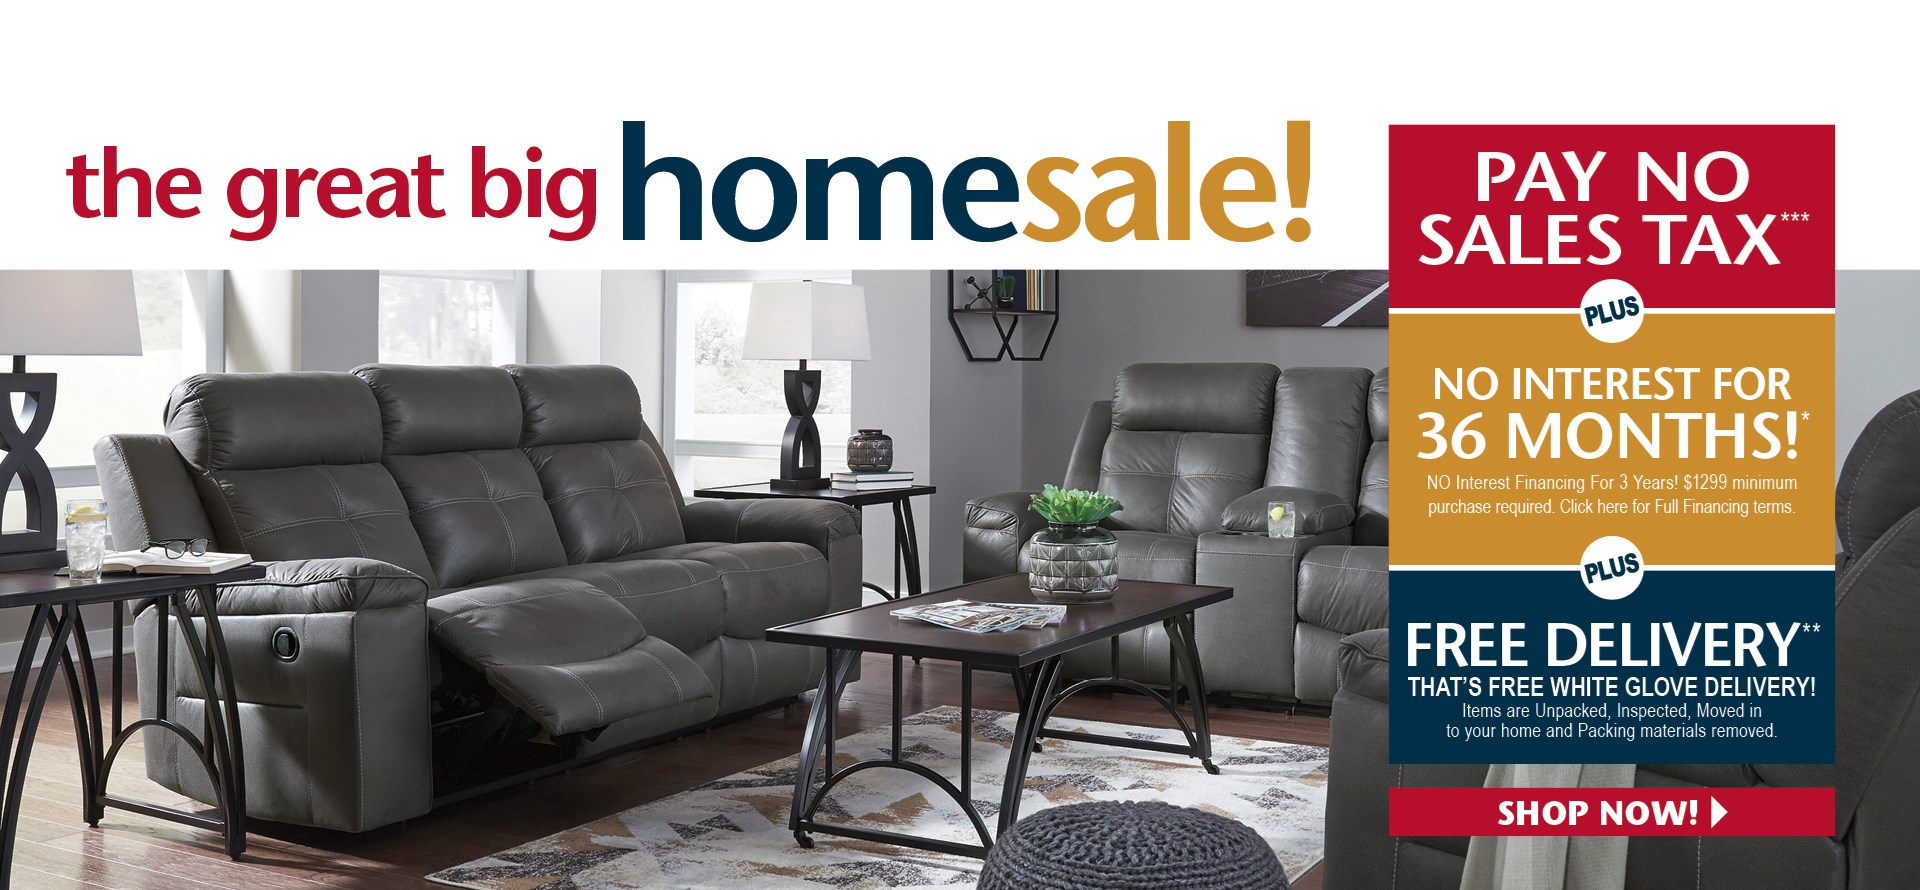 the Great Big Home Sale